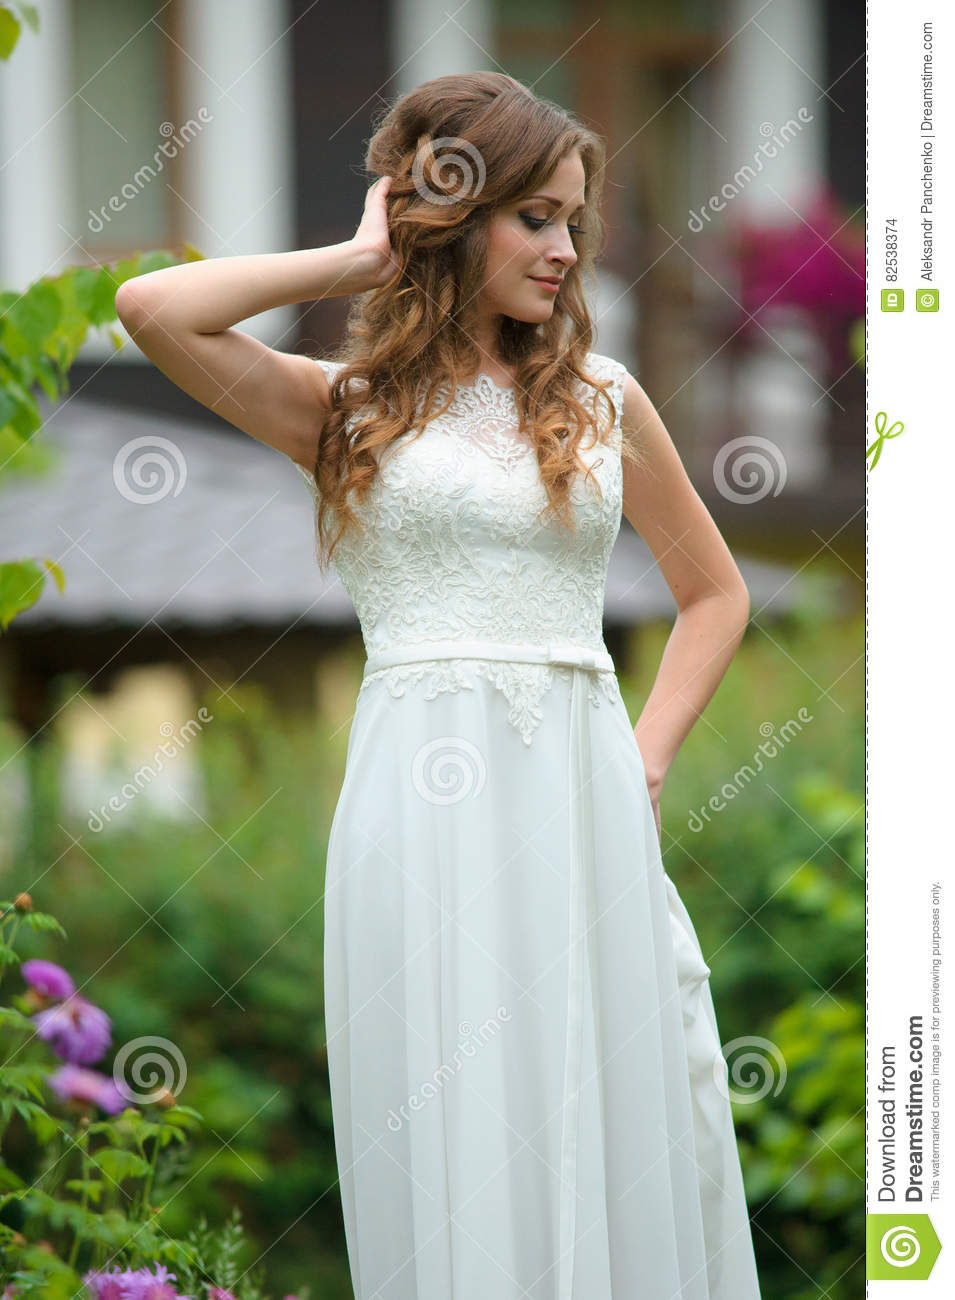 Outdoor fashion portrait of young pretty happy woman in summer o